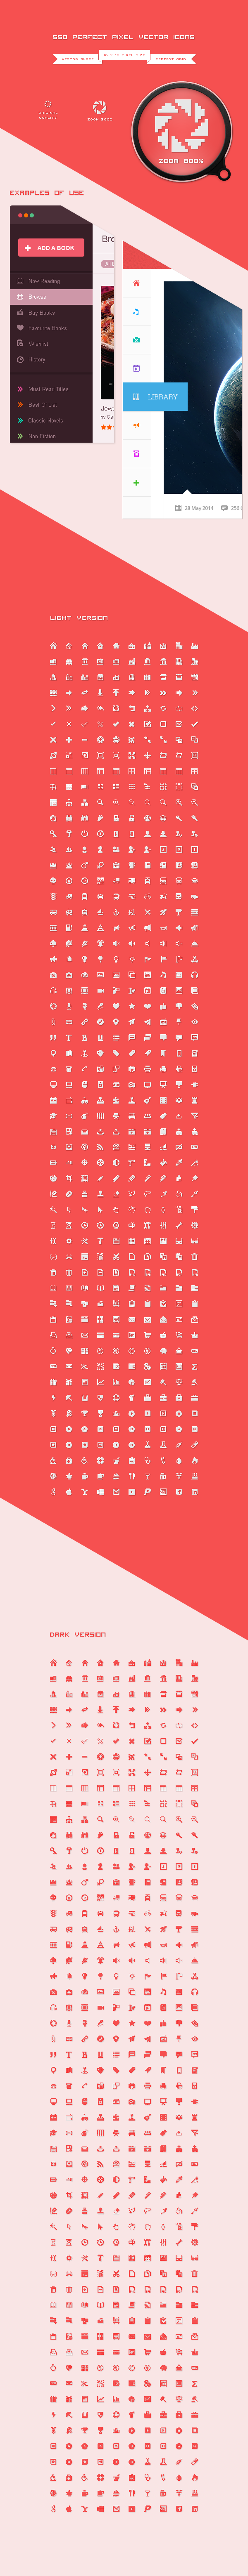 550 perfect pixel vector icons by vuongthanhchung